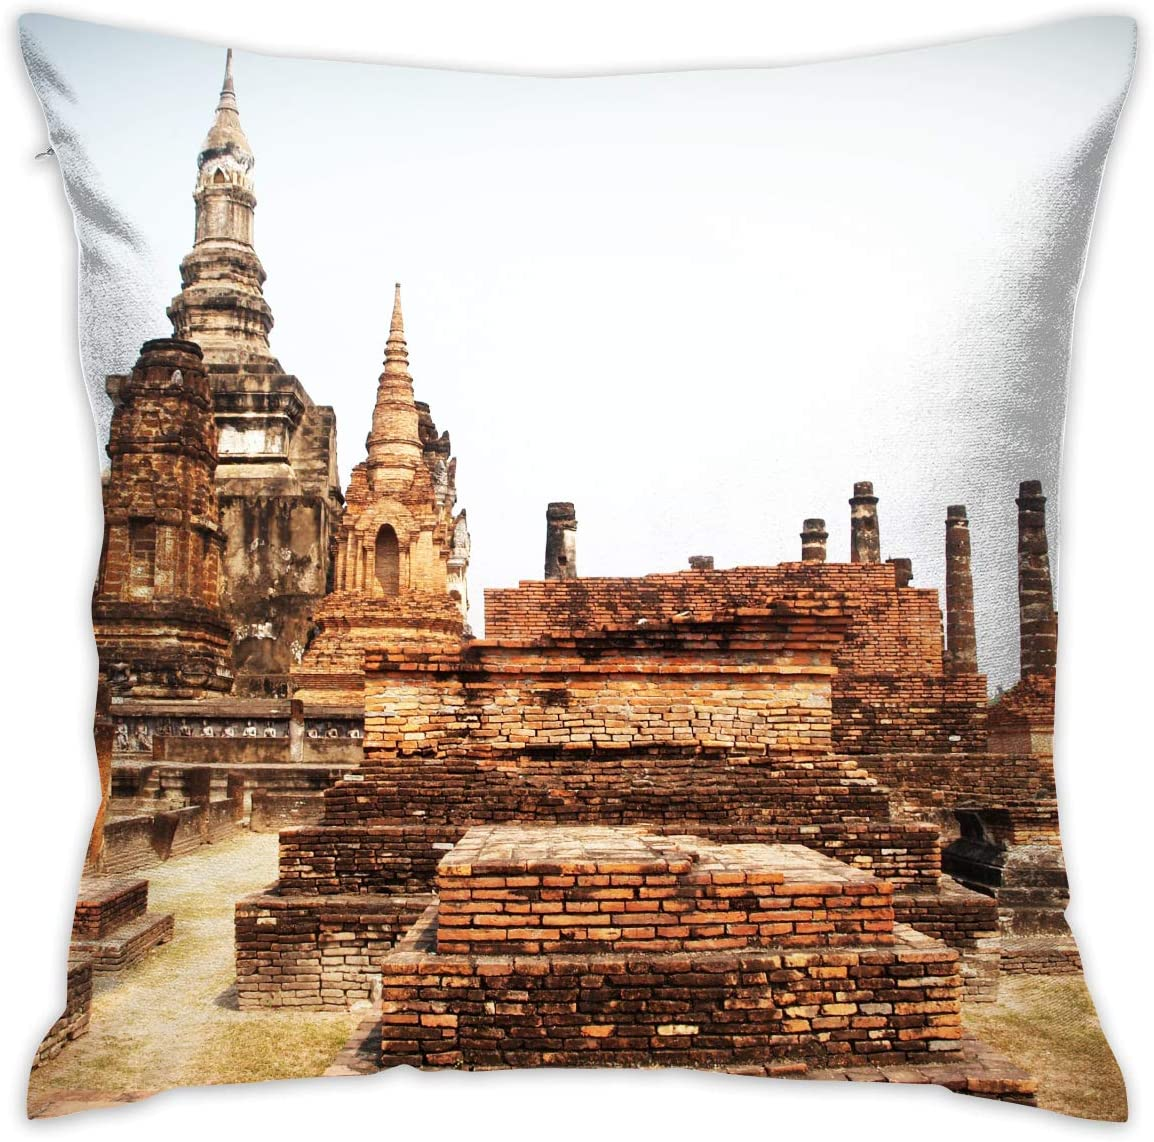 jiger Throw Pillow Cushion Cover,Angkor Wat, Cambodia,Decorative Square Accent Pillow Case, 18X 18 Inches